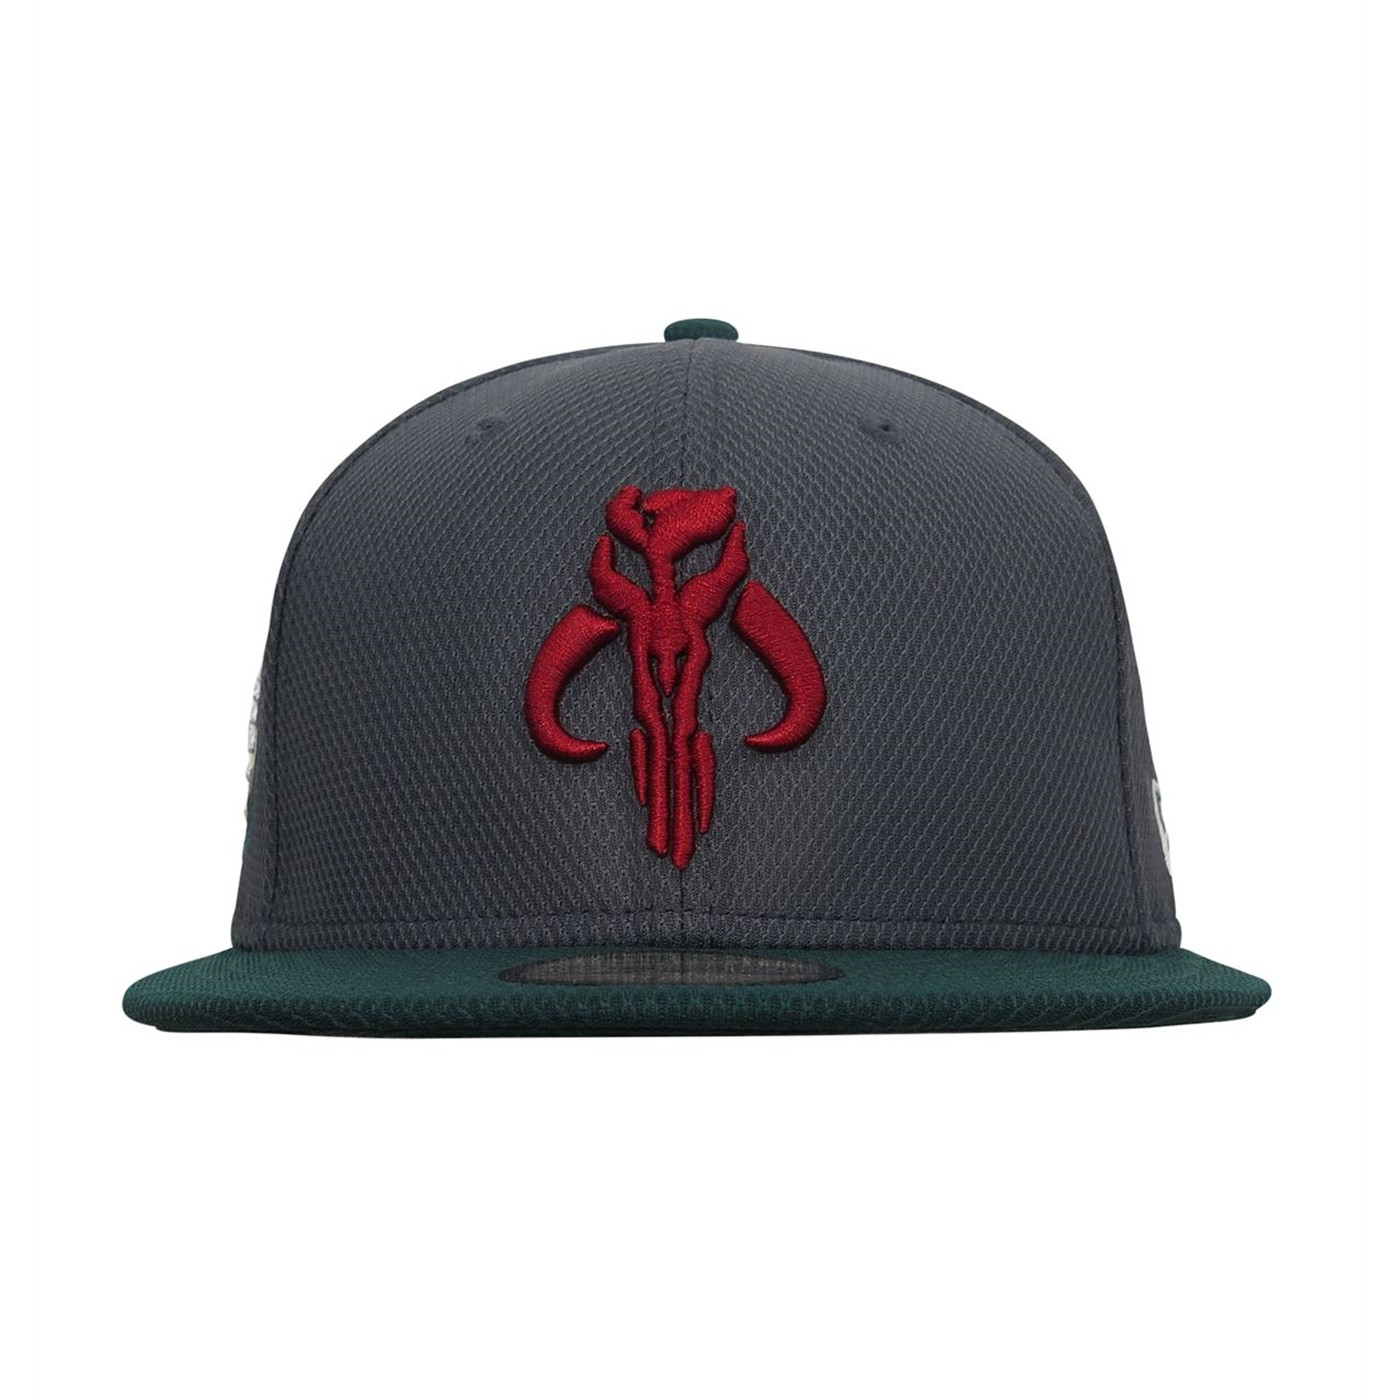 Star Wars Boba Fett Mandalorian 9Fifty Adjustable Hat